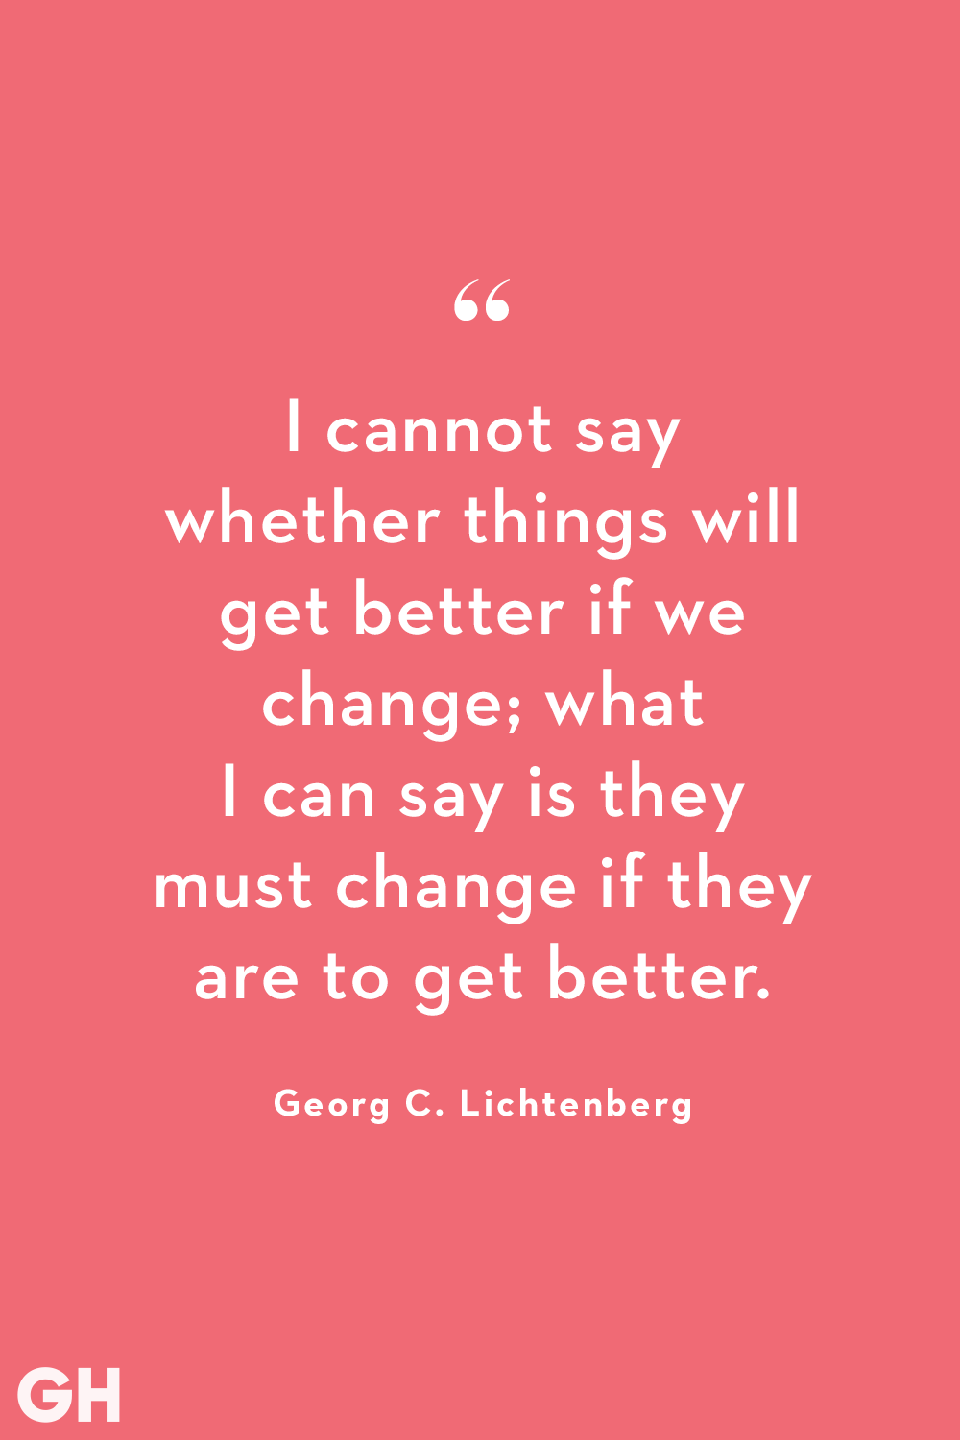 <p>I cannot say whether things will get better if we change; what I can say is they must change if they are to get better.</p>